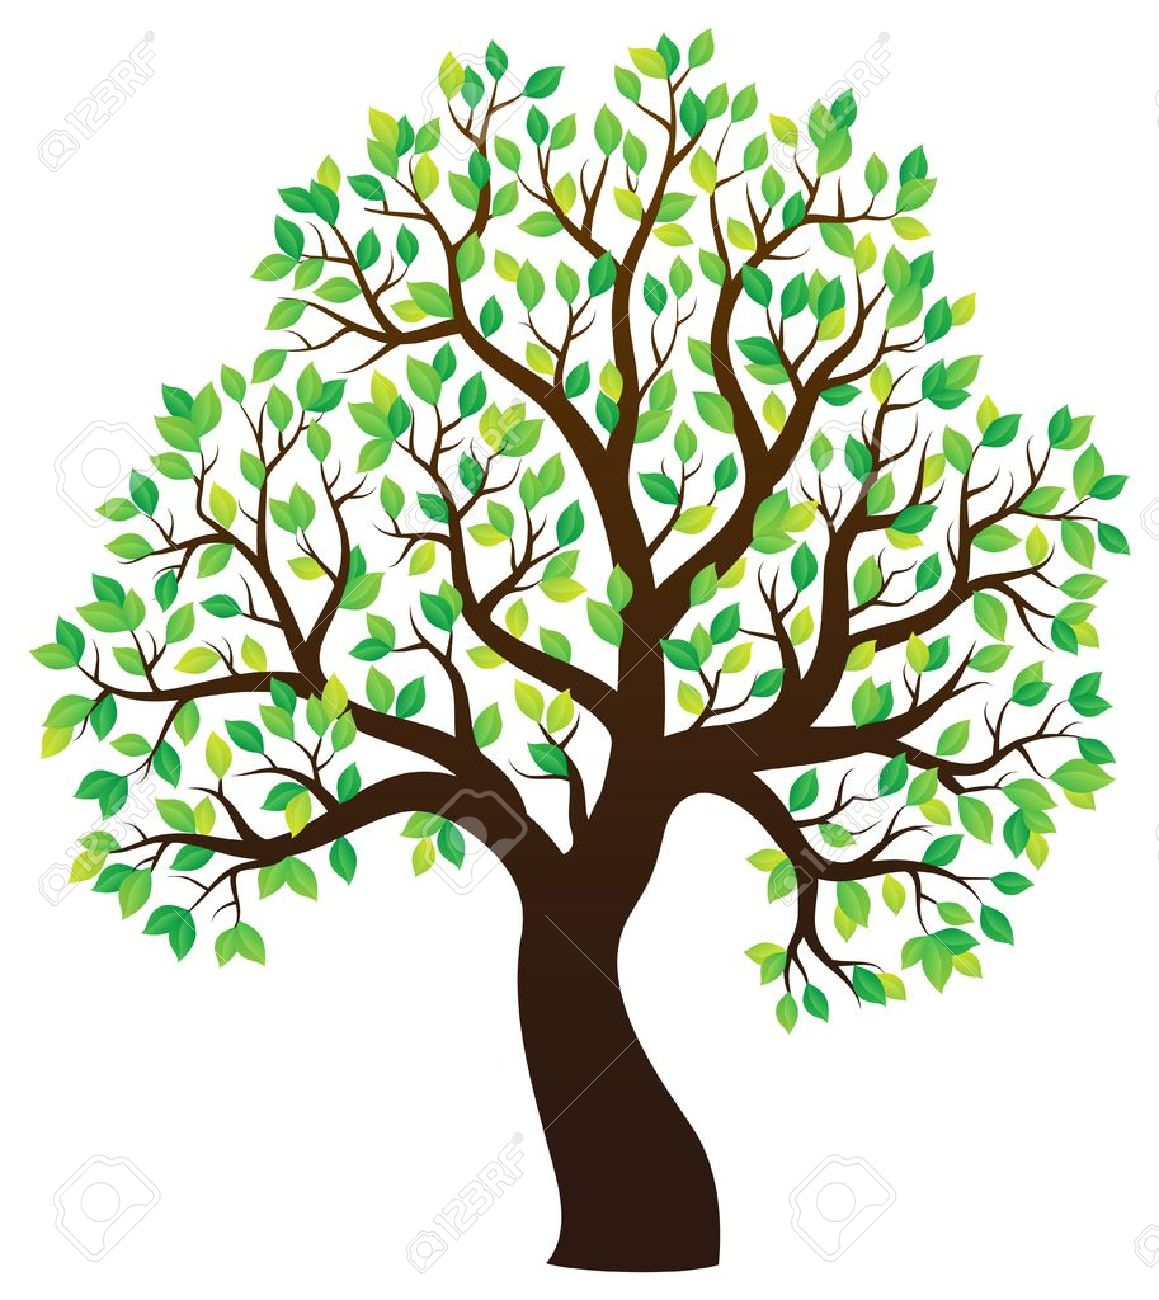 Silhouette of leafy tree theme 1 - eps10 vector illustration. Stock Vector - 50263270